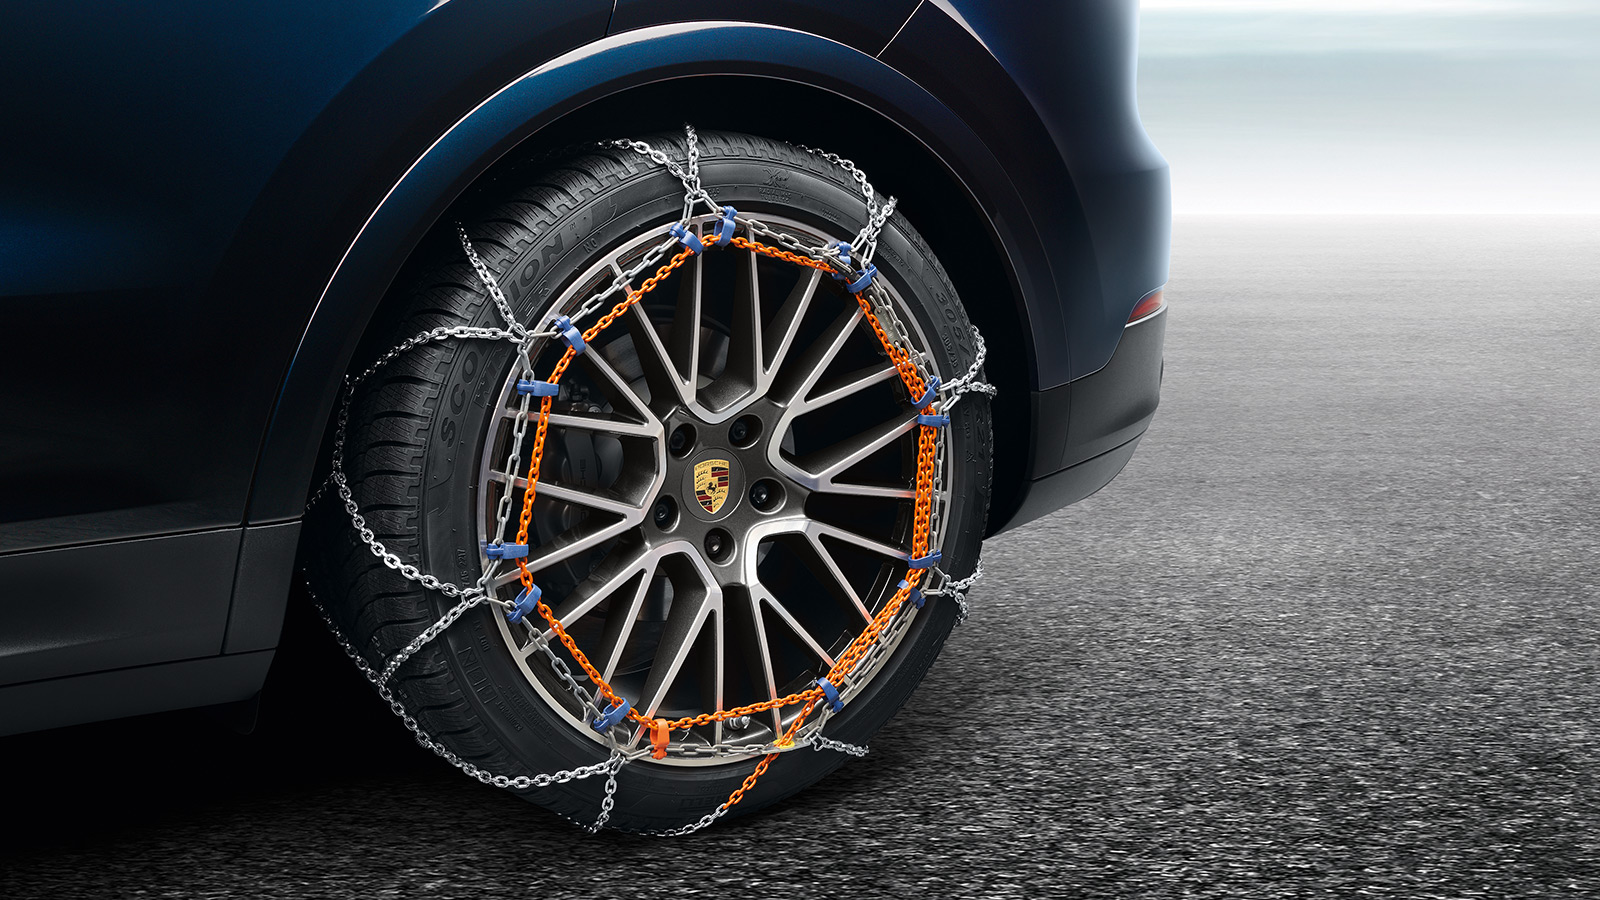 Porsche - Wheels and wheel accessories